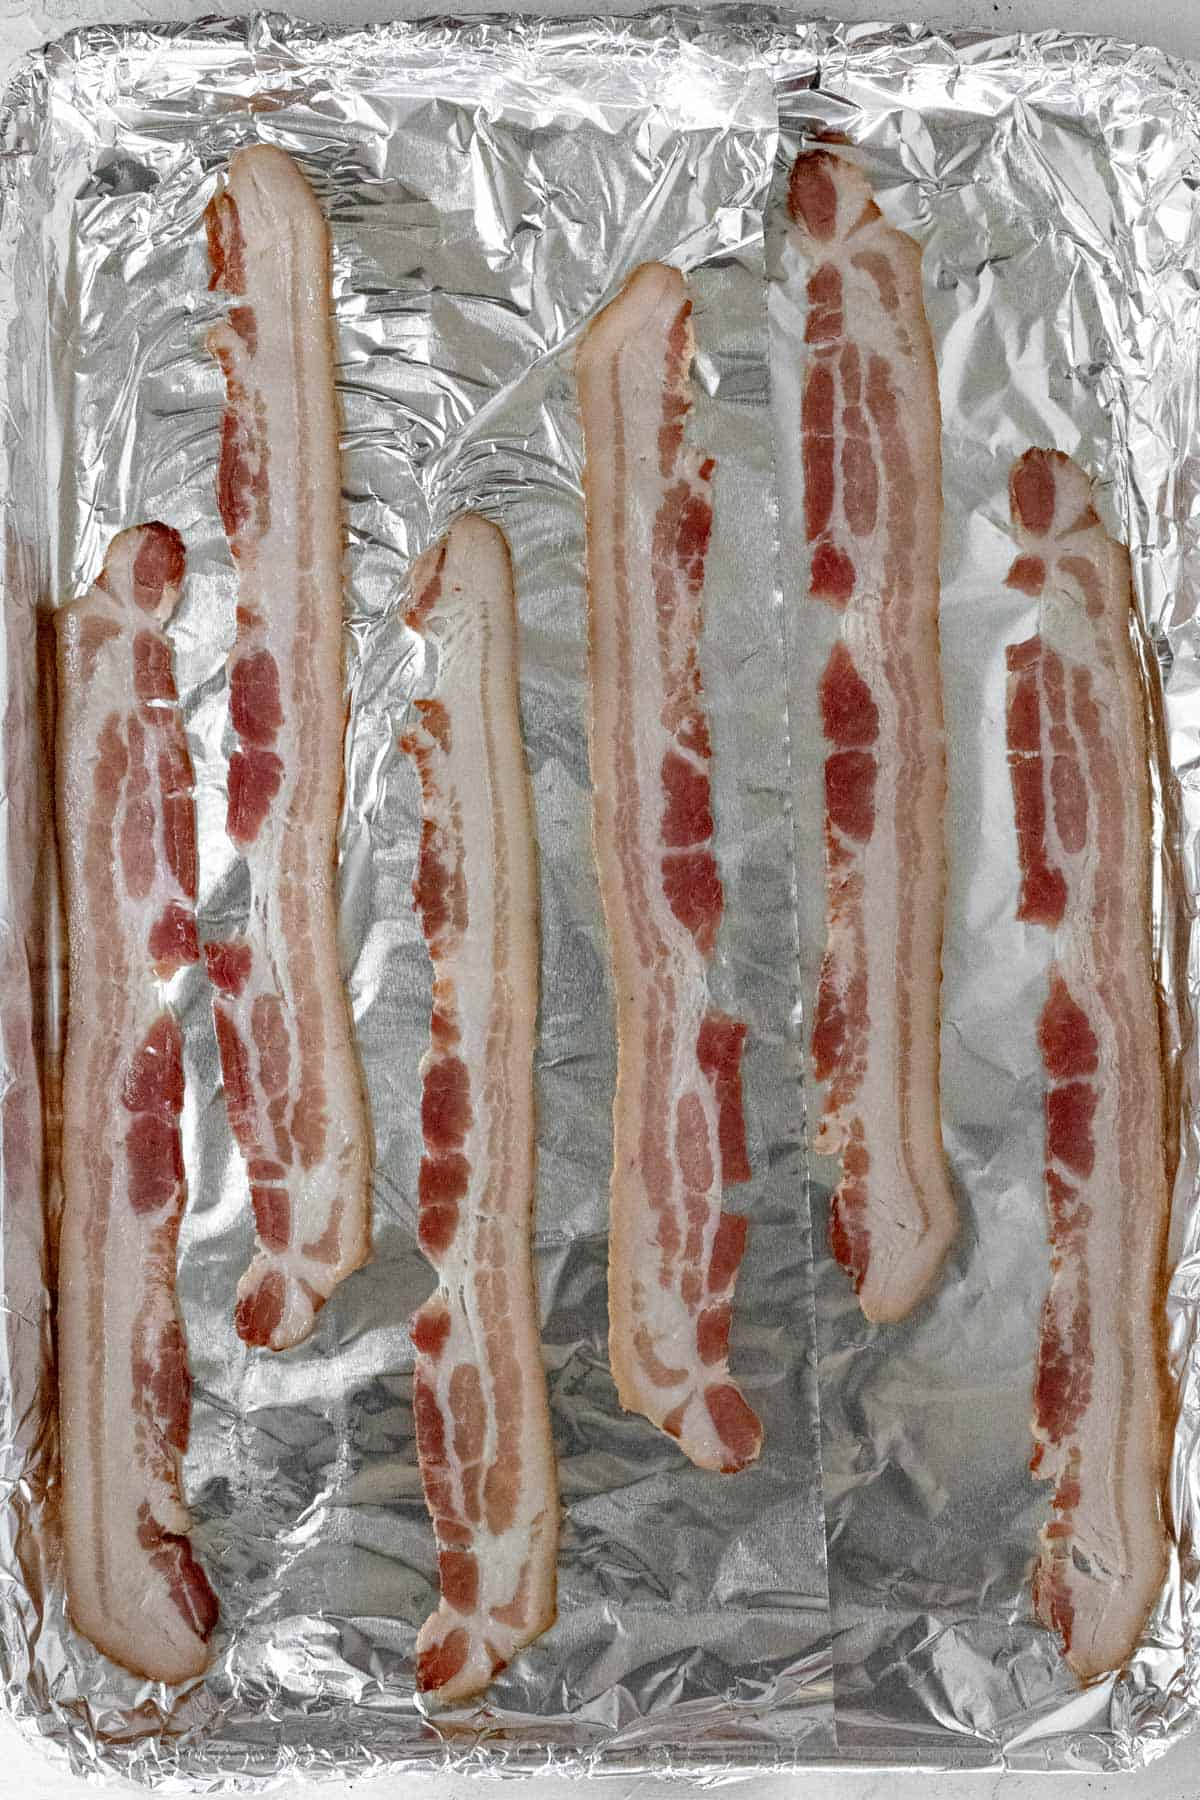 Strips of bacon on a sheet pan before going in the oven.